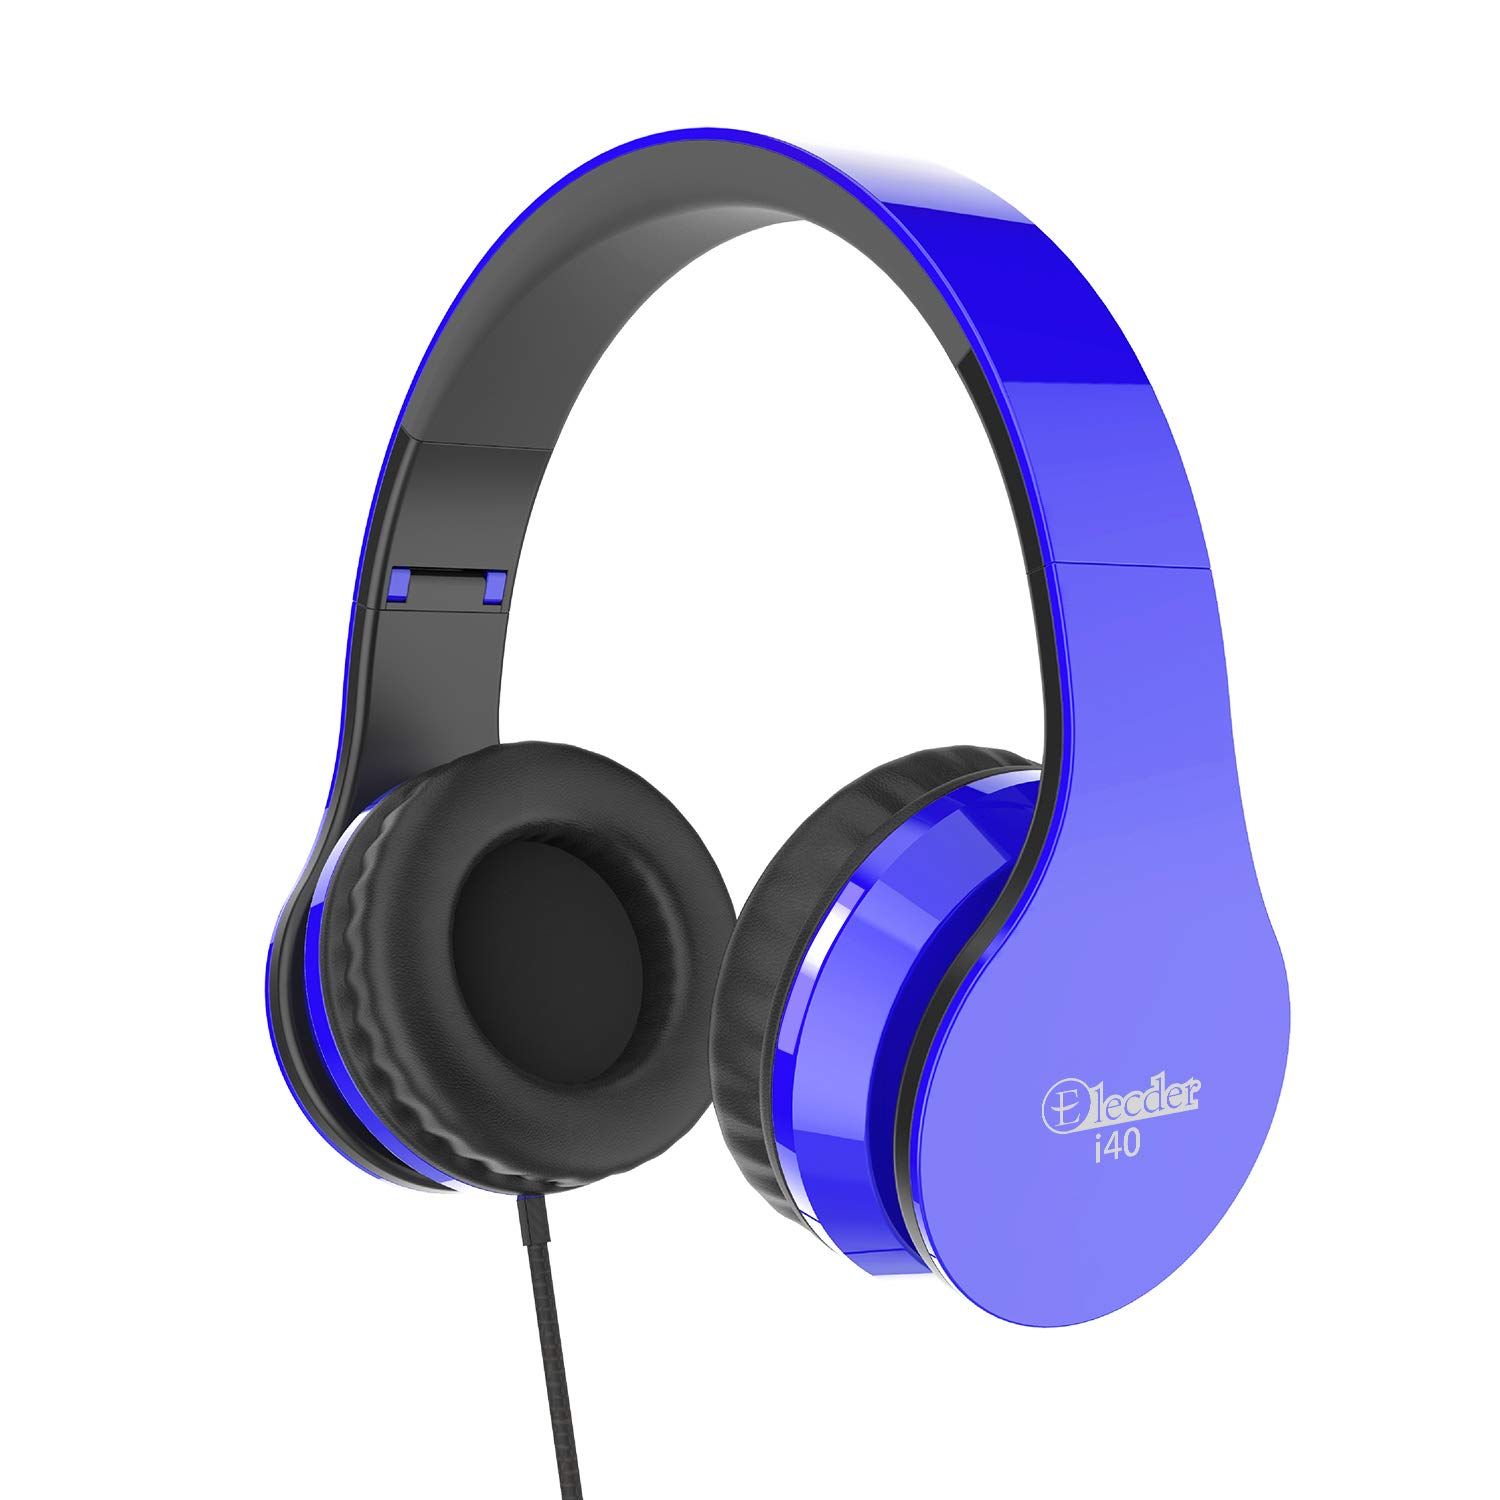 Elecder i40 Headphones with Microphone Foldable Lightweight Adjustable Wired On Ear Headsets with 3.5mm Jack for iPad Cellphones Laptop Computer Smartphones MP3/4 Kindle Airplane School (Blue/Black)